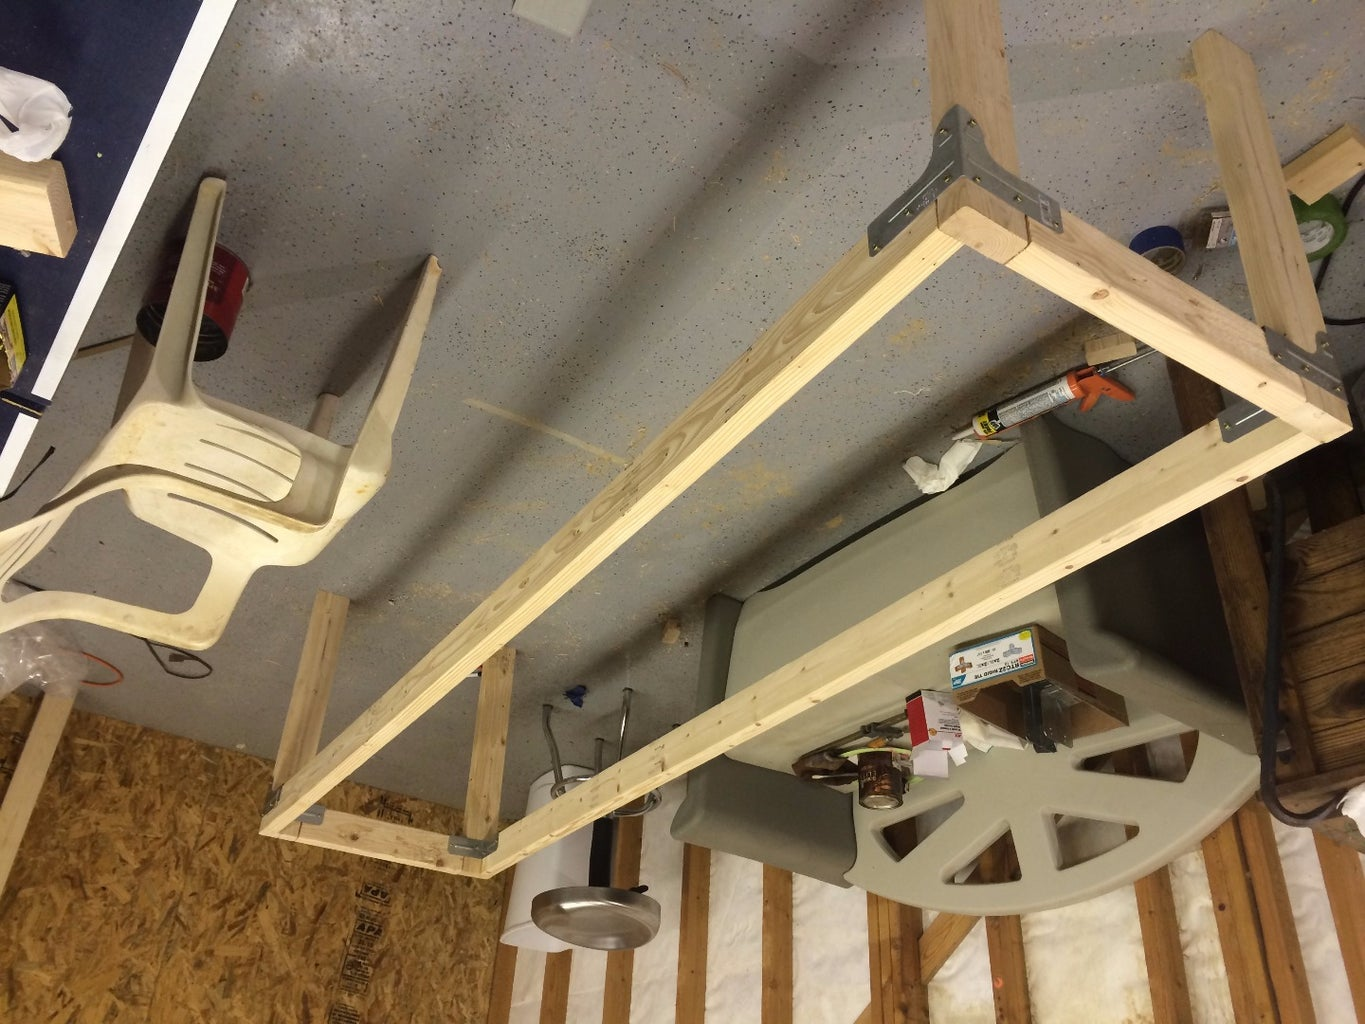 Build the Workbench Frame